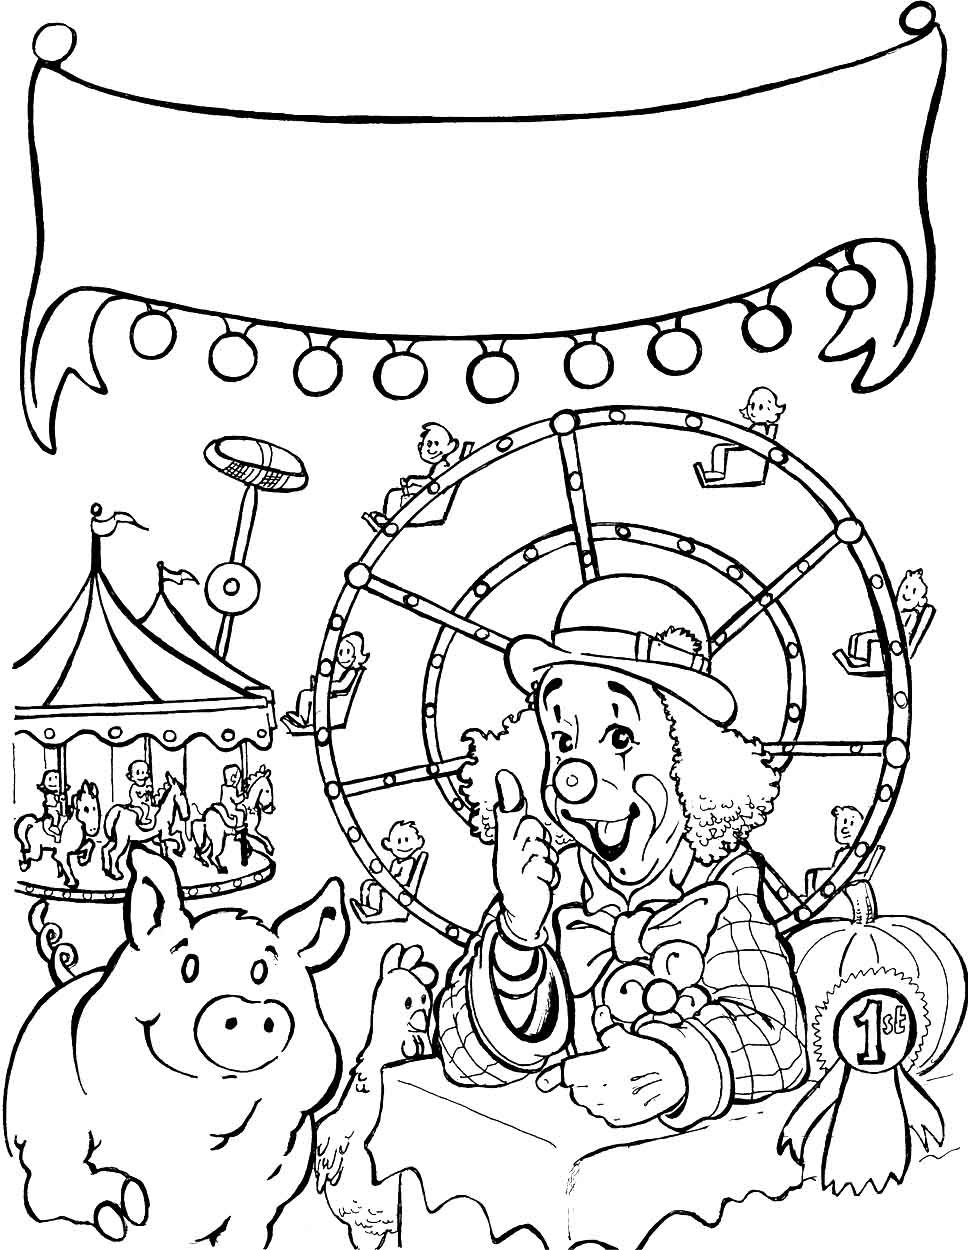 968x1250 Sensational Idea County Fair Coloring Pages Printable For Kids